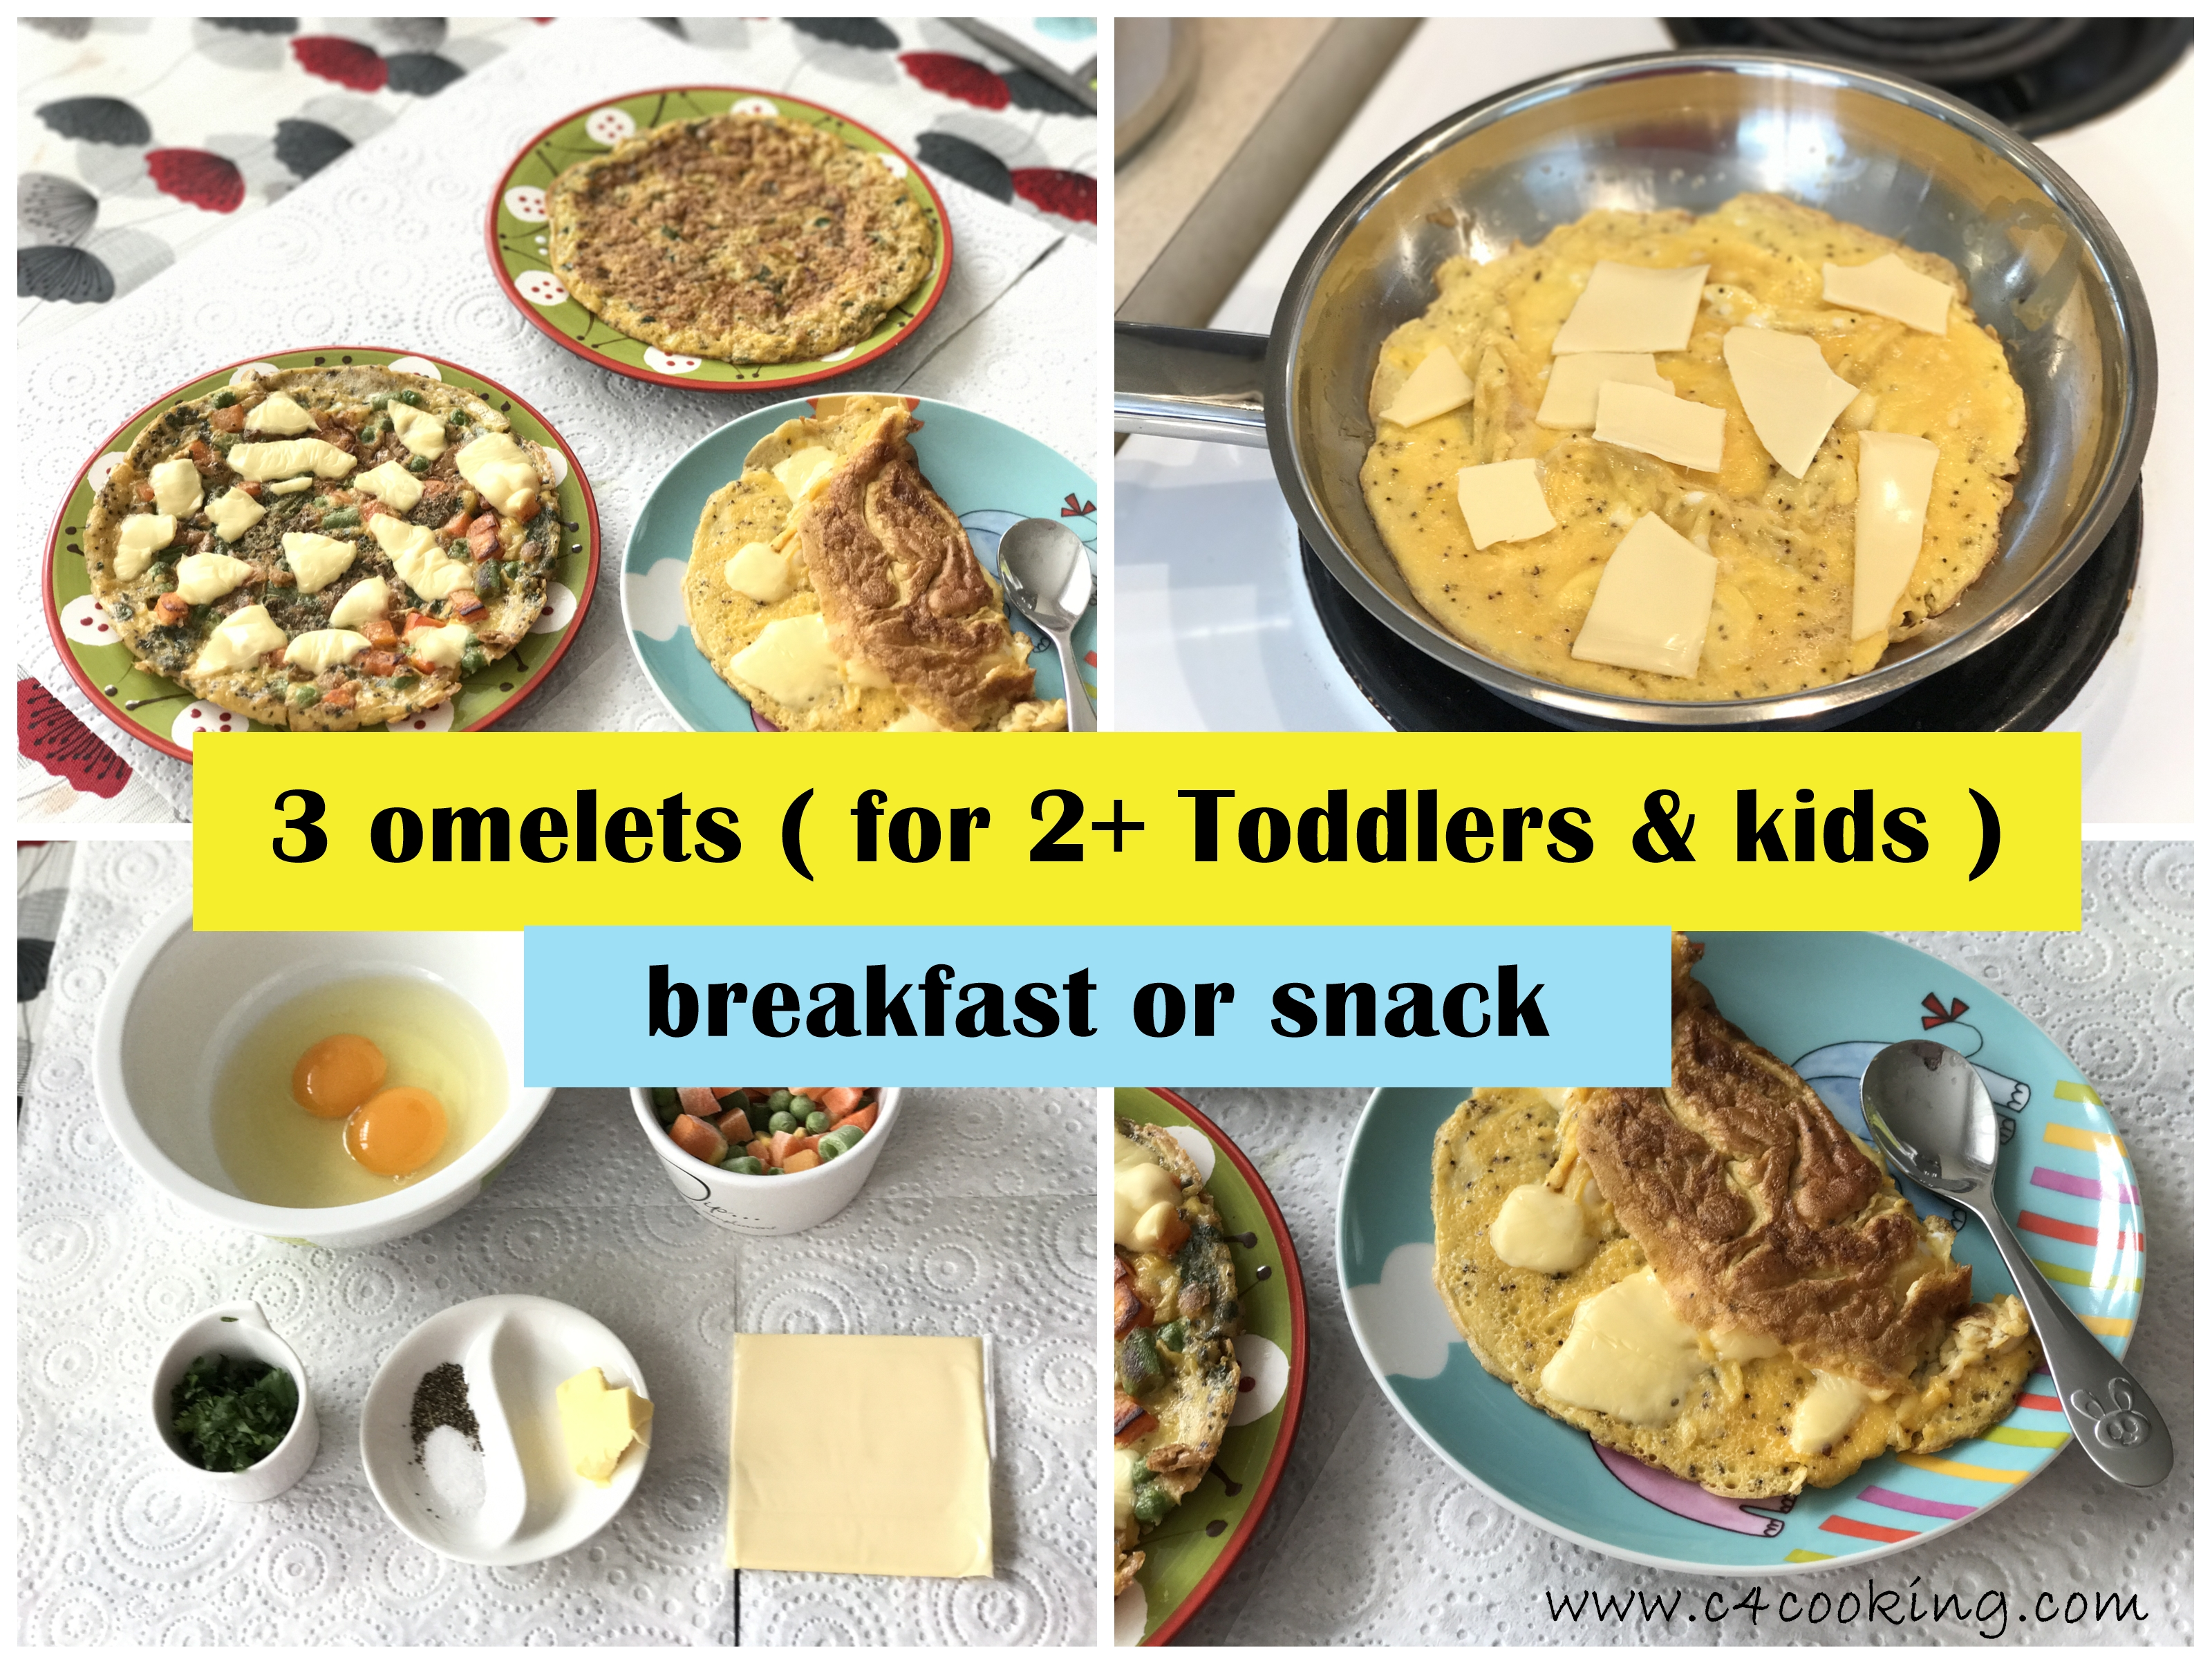 omelet recipes for toddlers kids, snack, breakfast